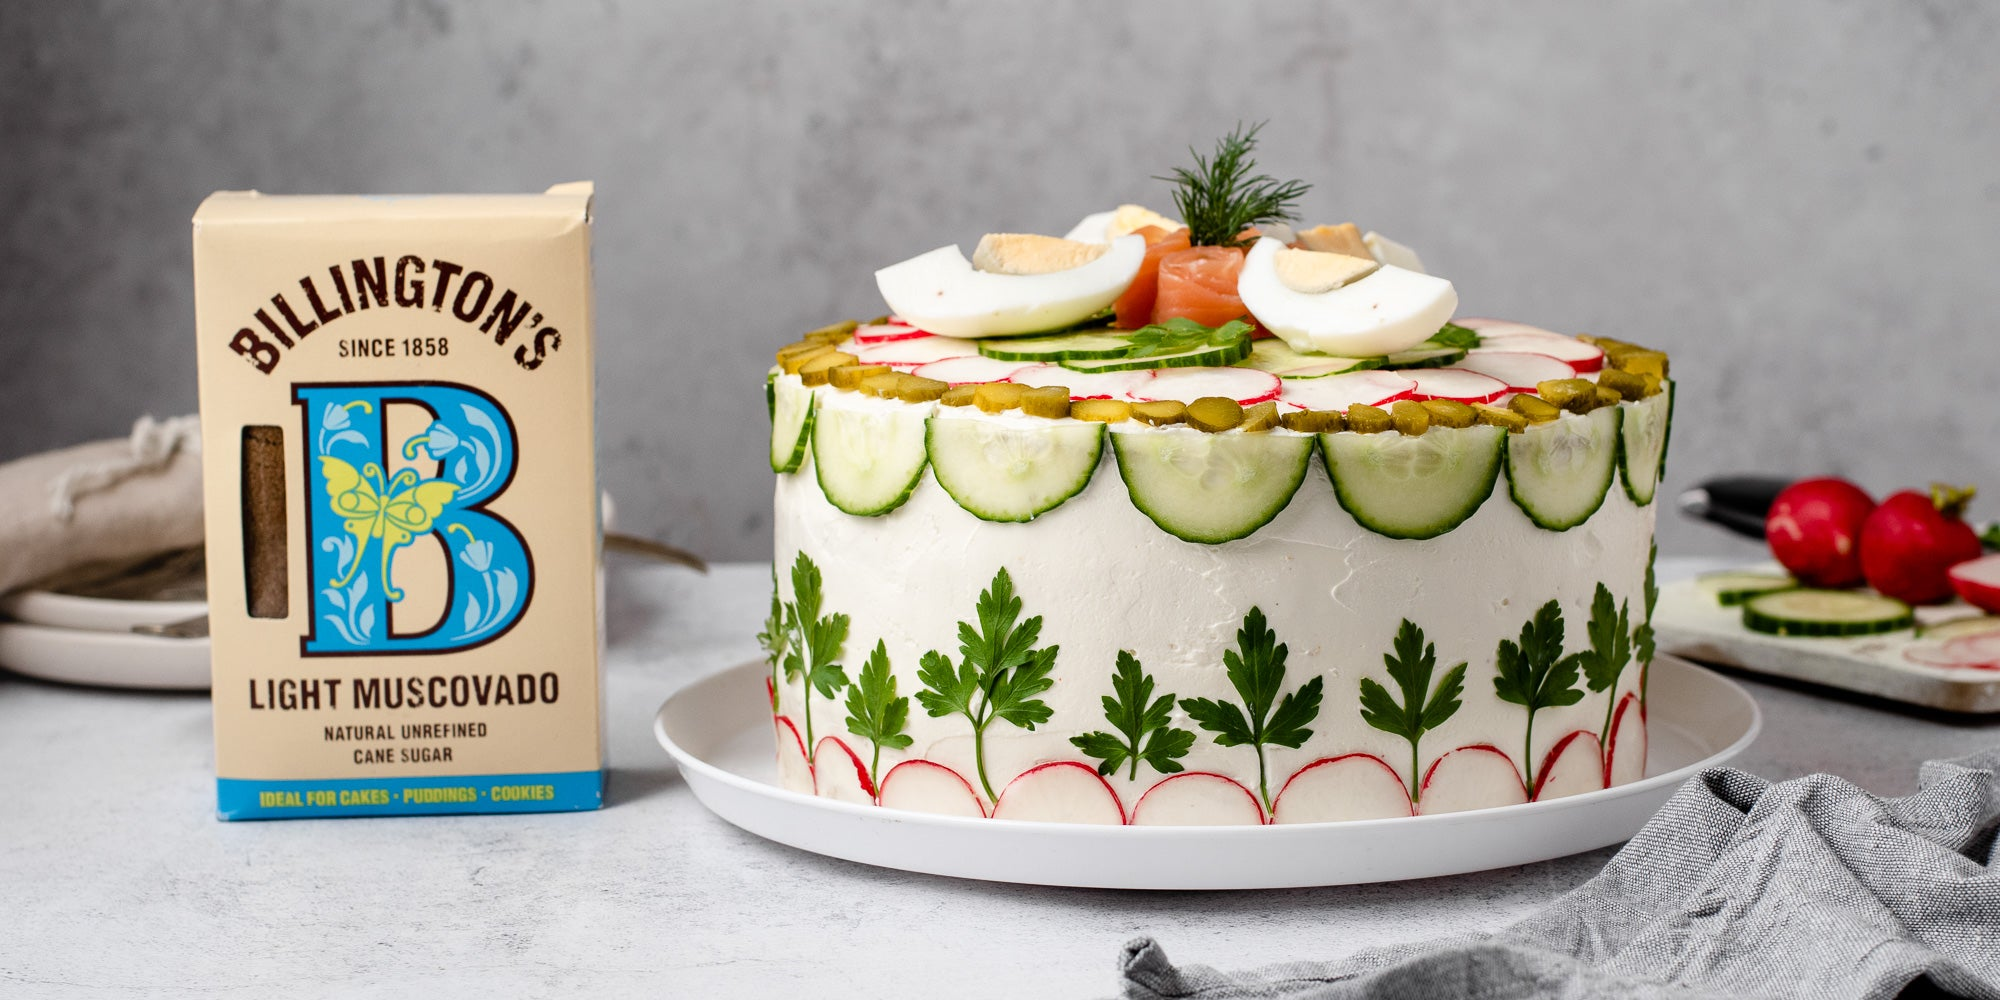 Full shot of savoury cake on white plate with pack of sugar